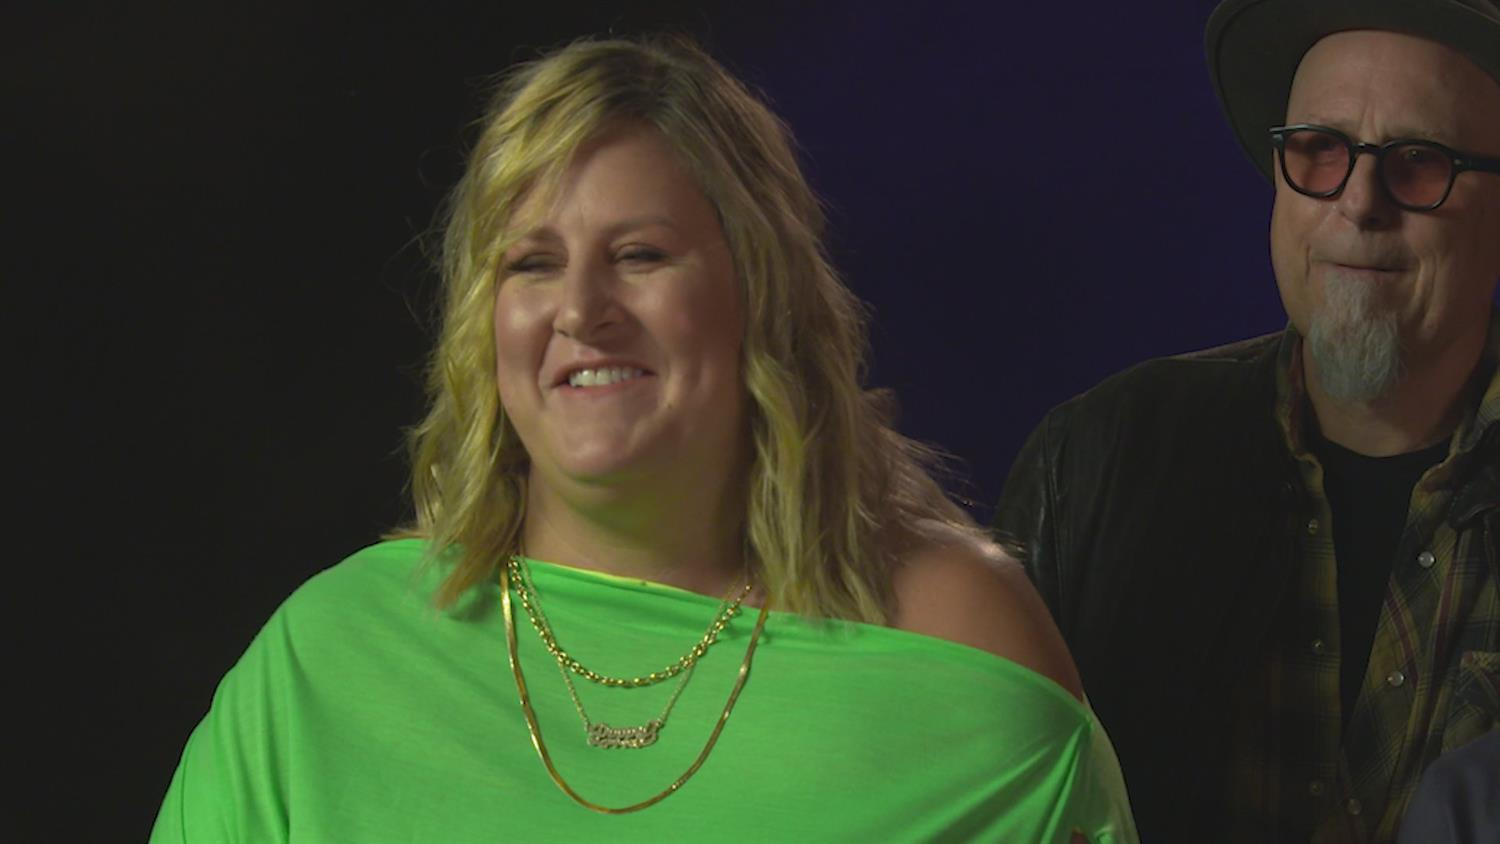 Bobcat Goldthwait, Bridget Everett and Danny Pudi Share What They Geek Out For